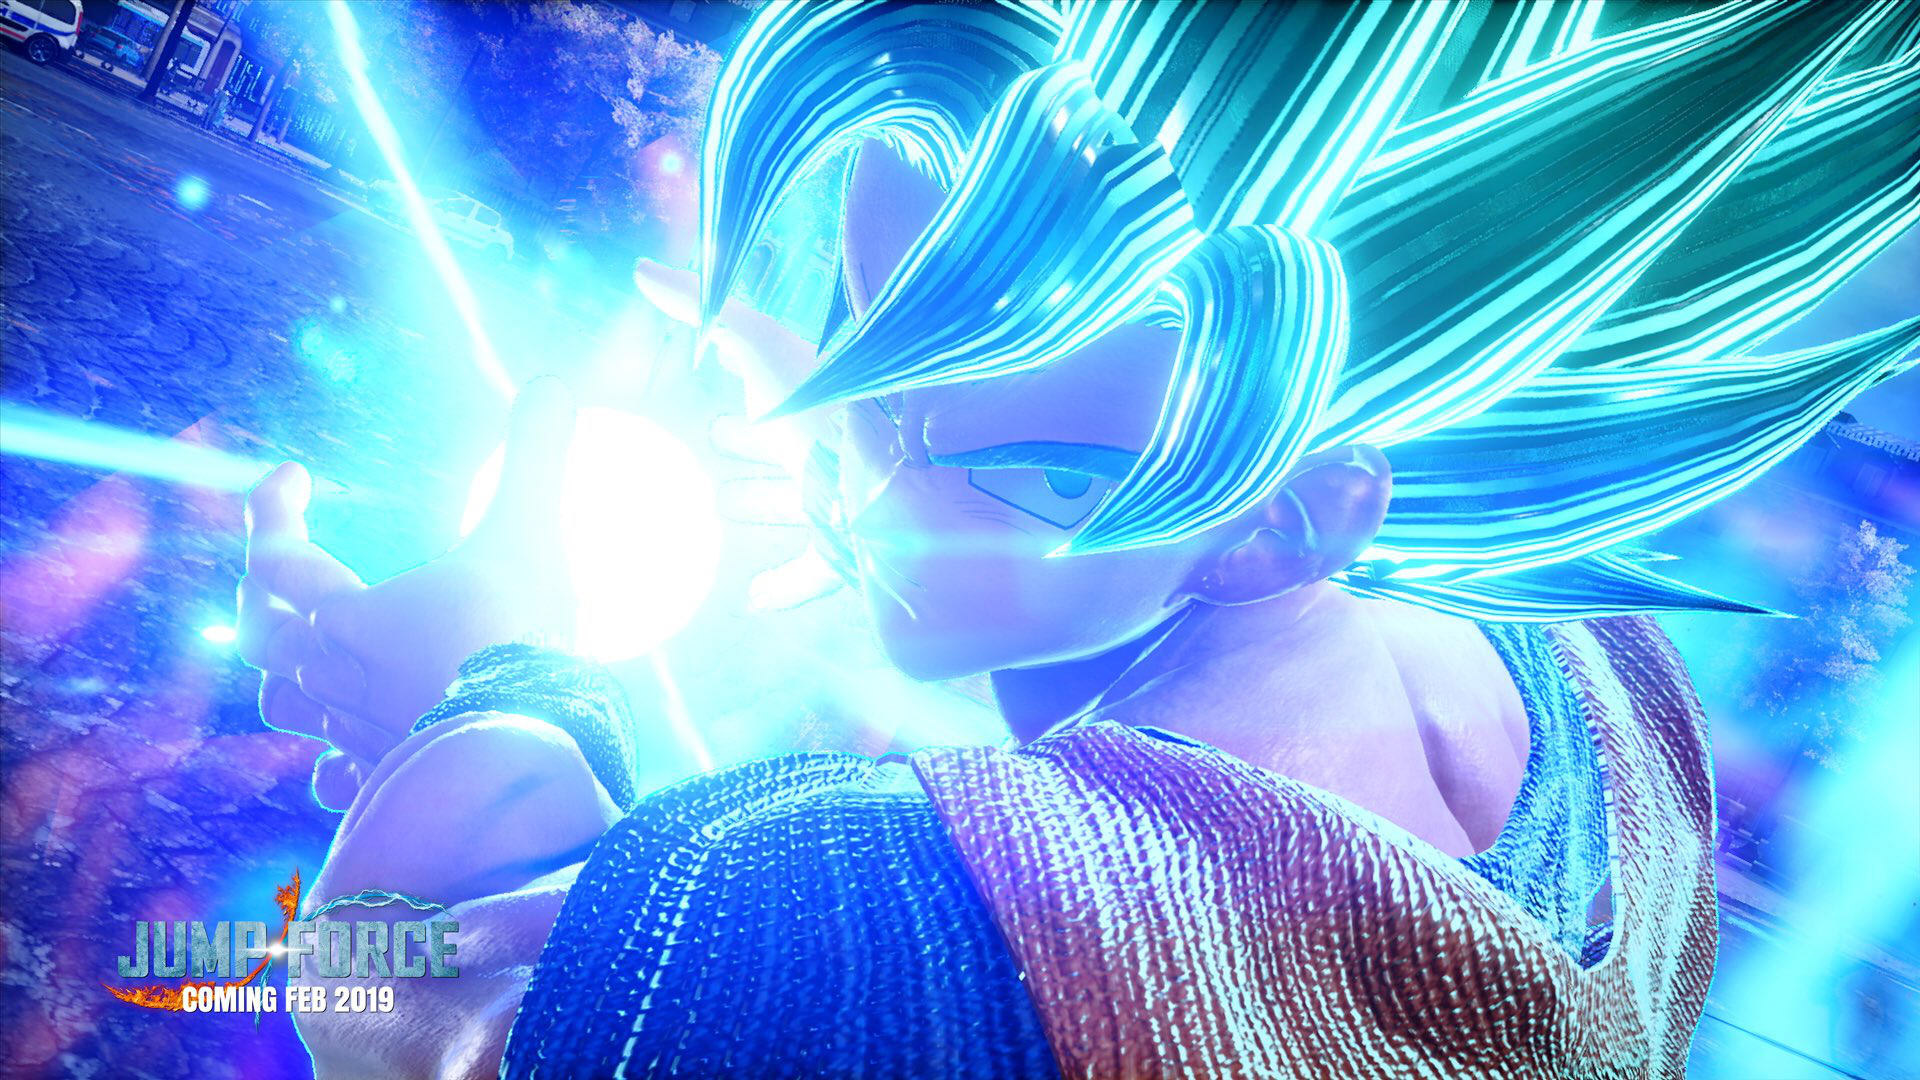 Jump Force Wallpaper in 1920x1080